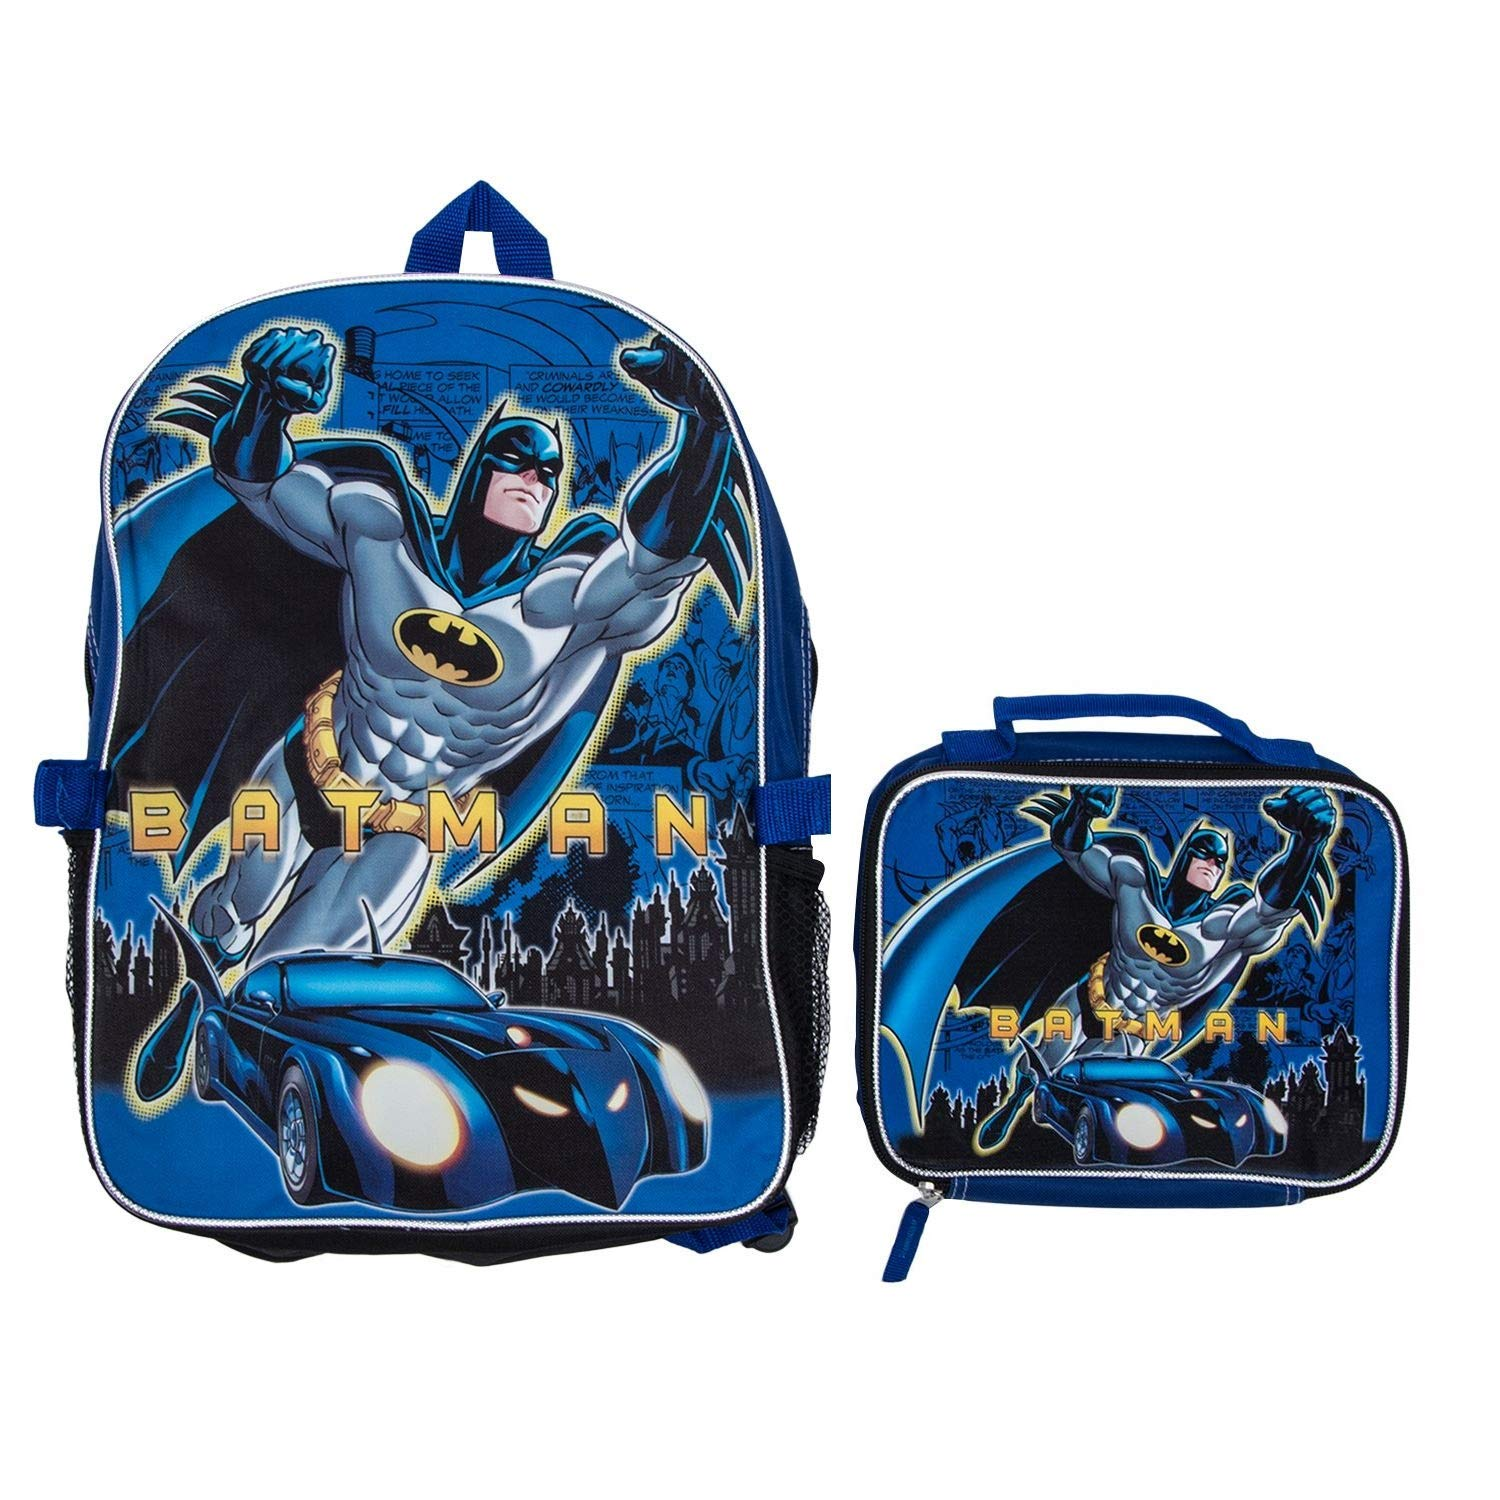 d061da0aeed3 Cheap Batman Lunch Box, find Batman Lunch Box deals on line at ...